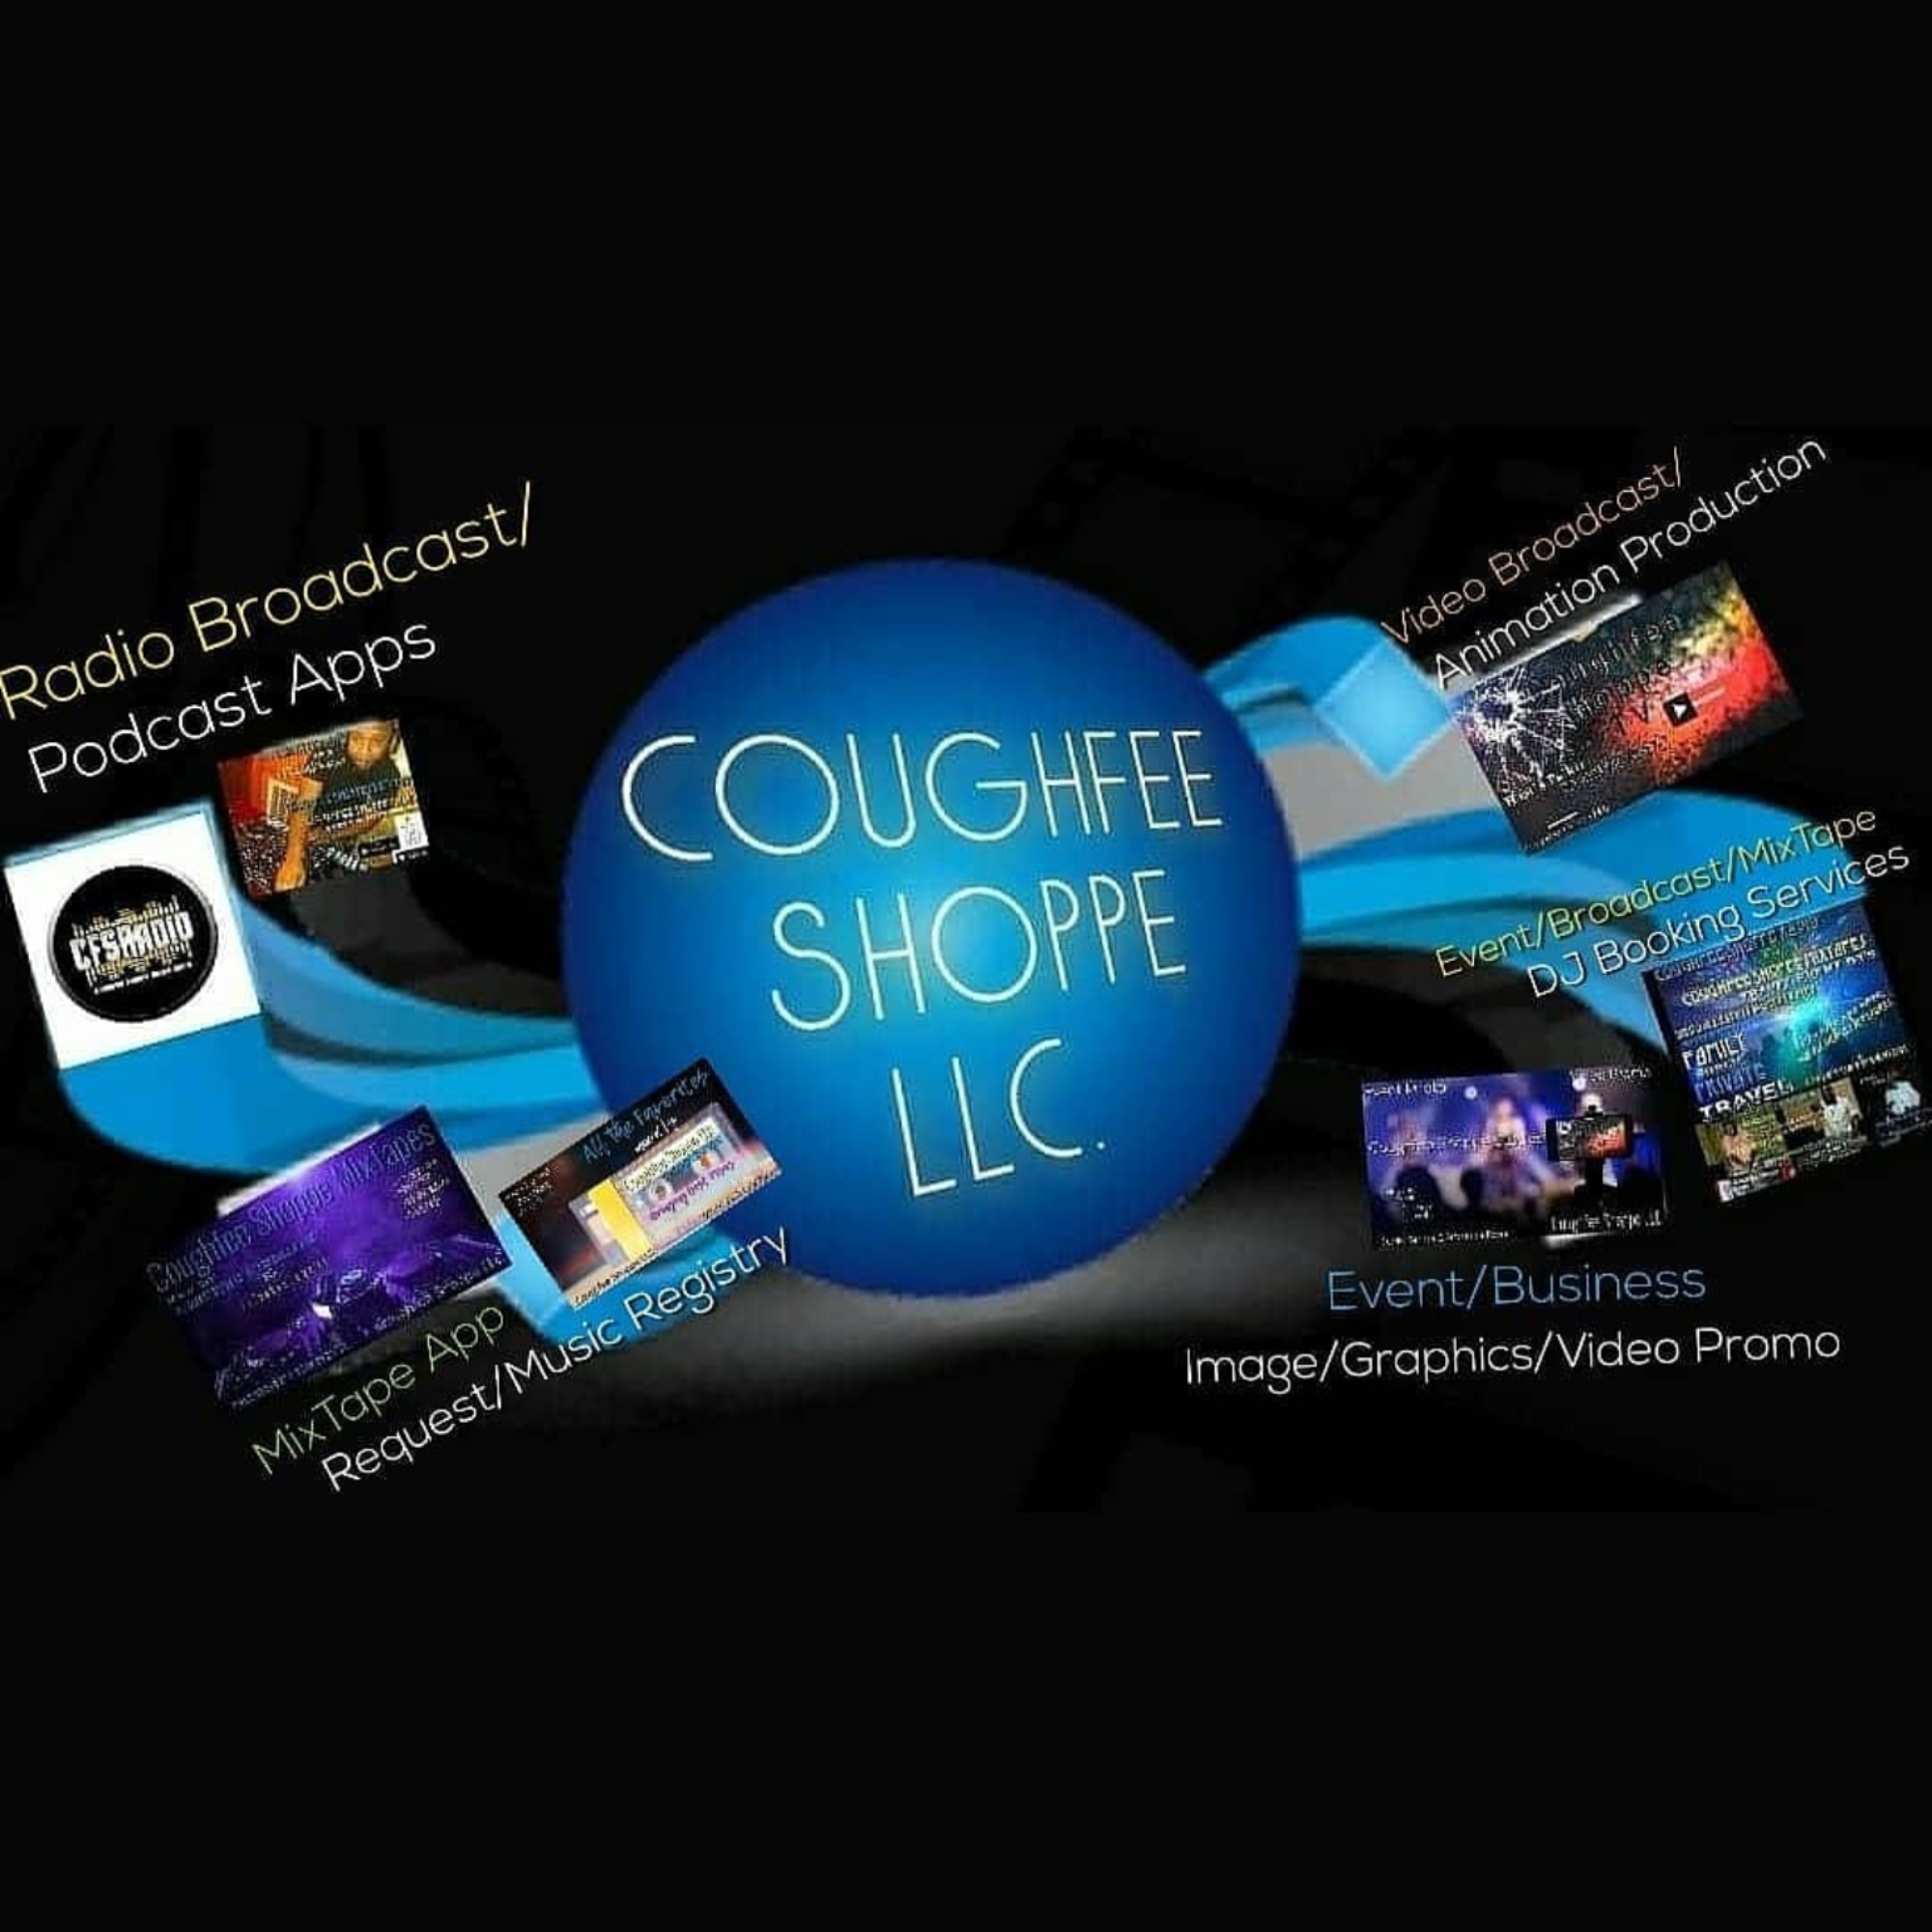 Coughfee Shoppe Radio